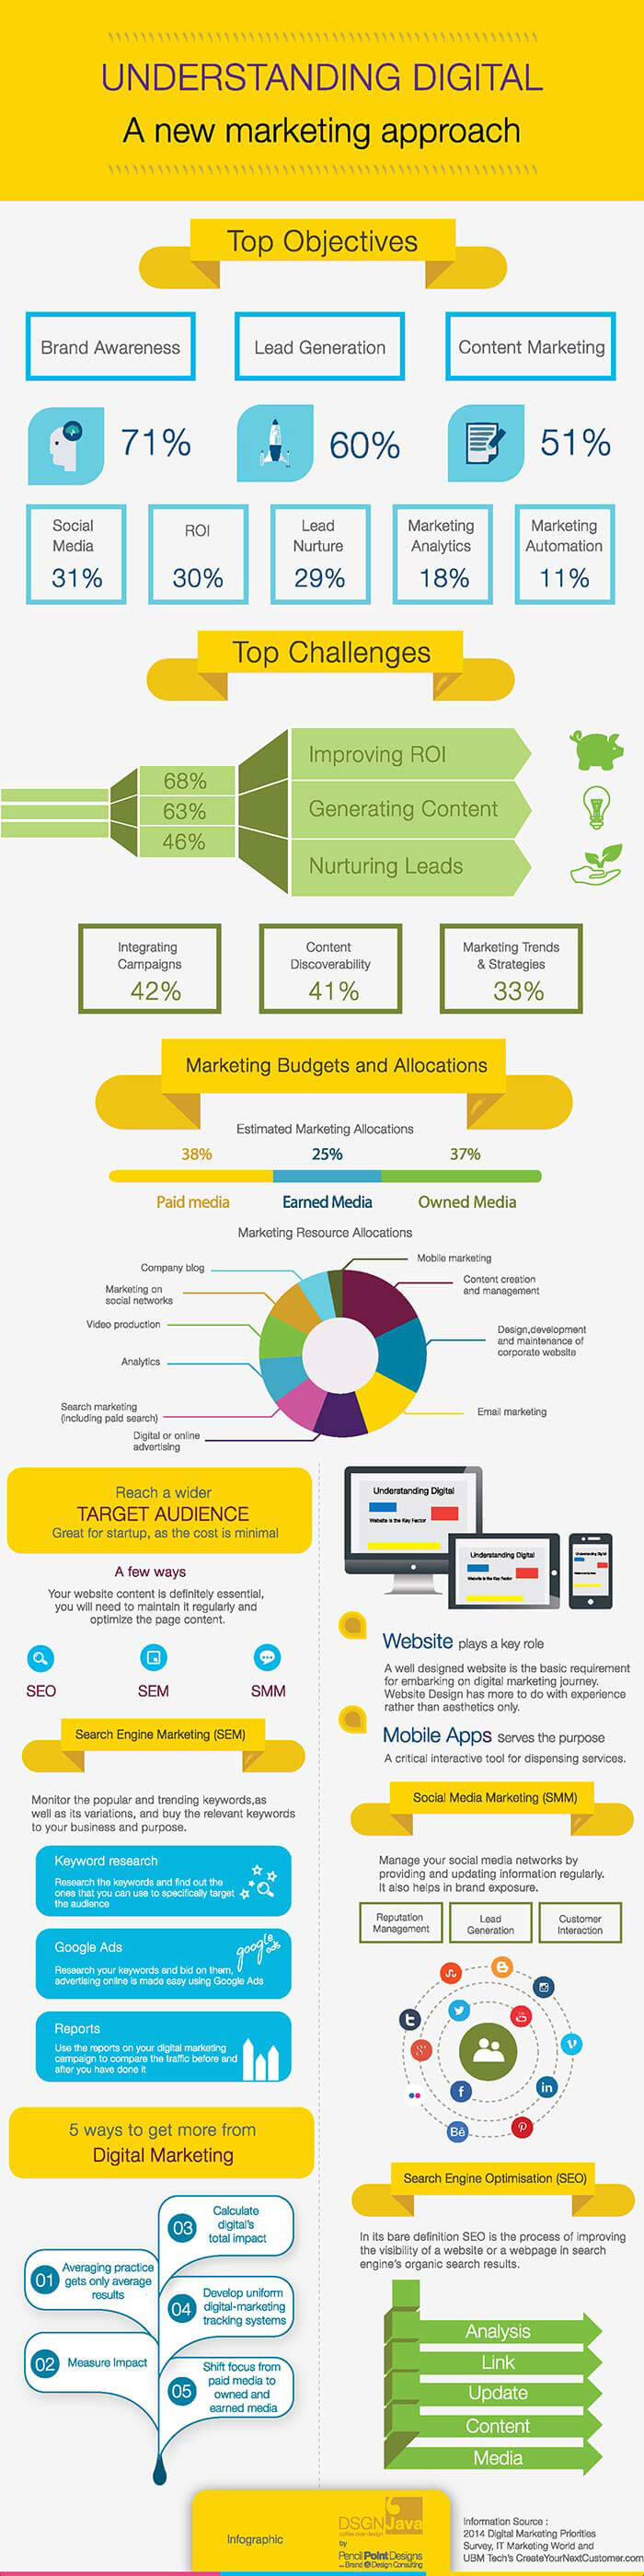 Understanding digital infographic